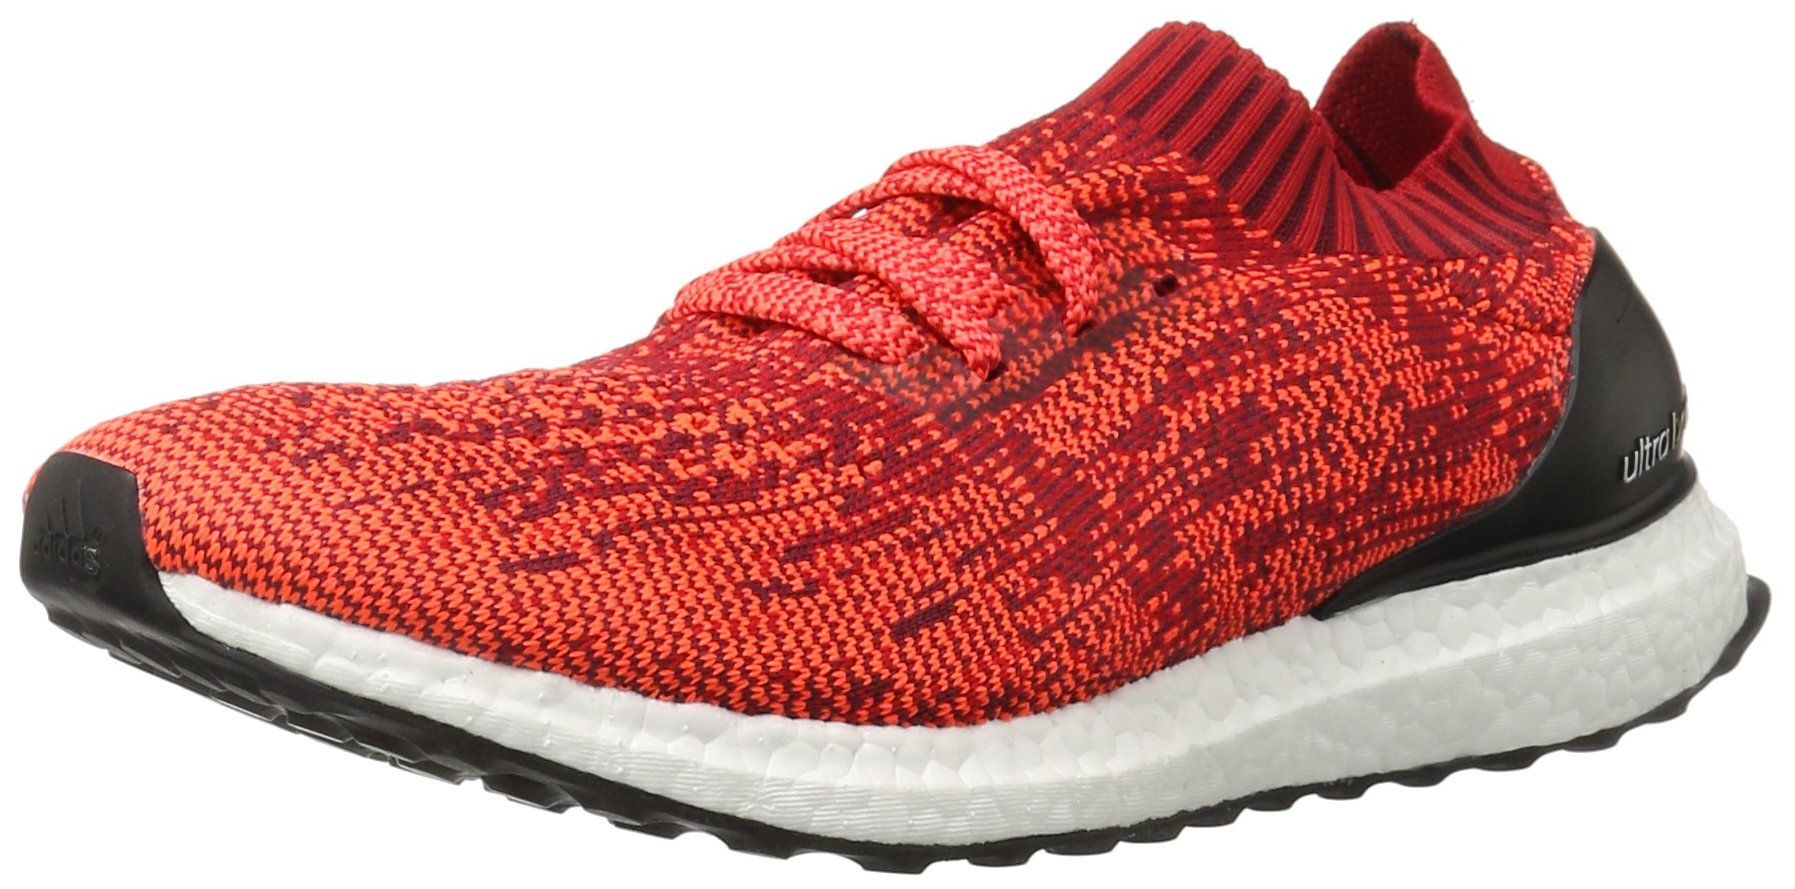 71rdQGFUuvL - adidas Ultra Boost Uncaged Running Shoes